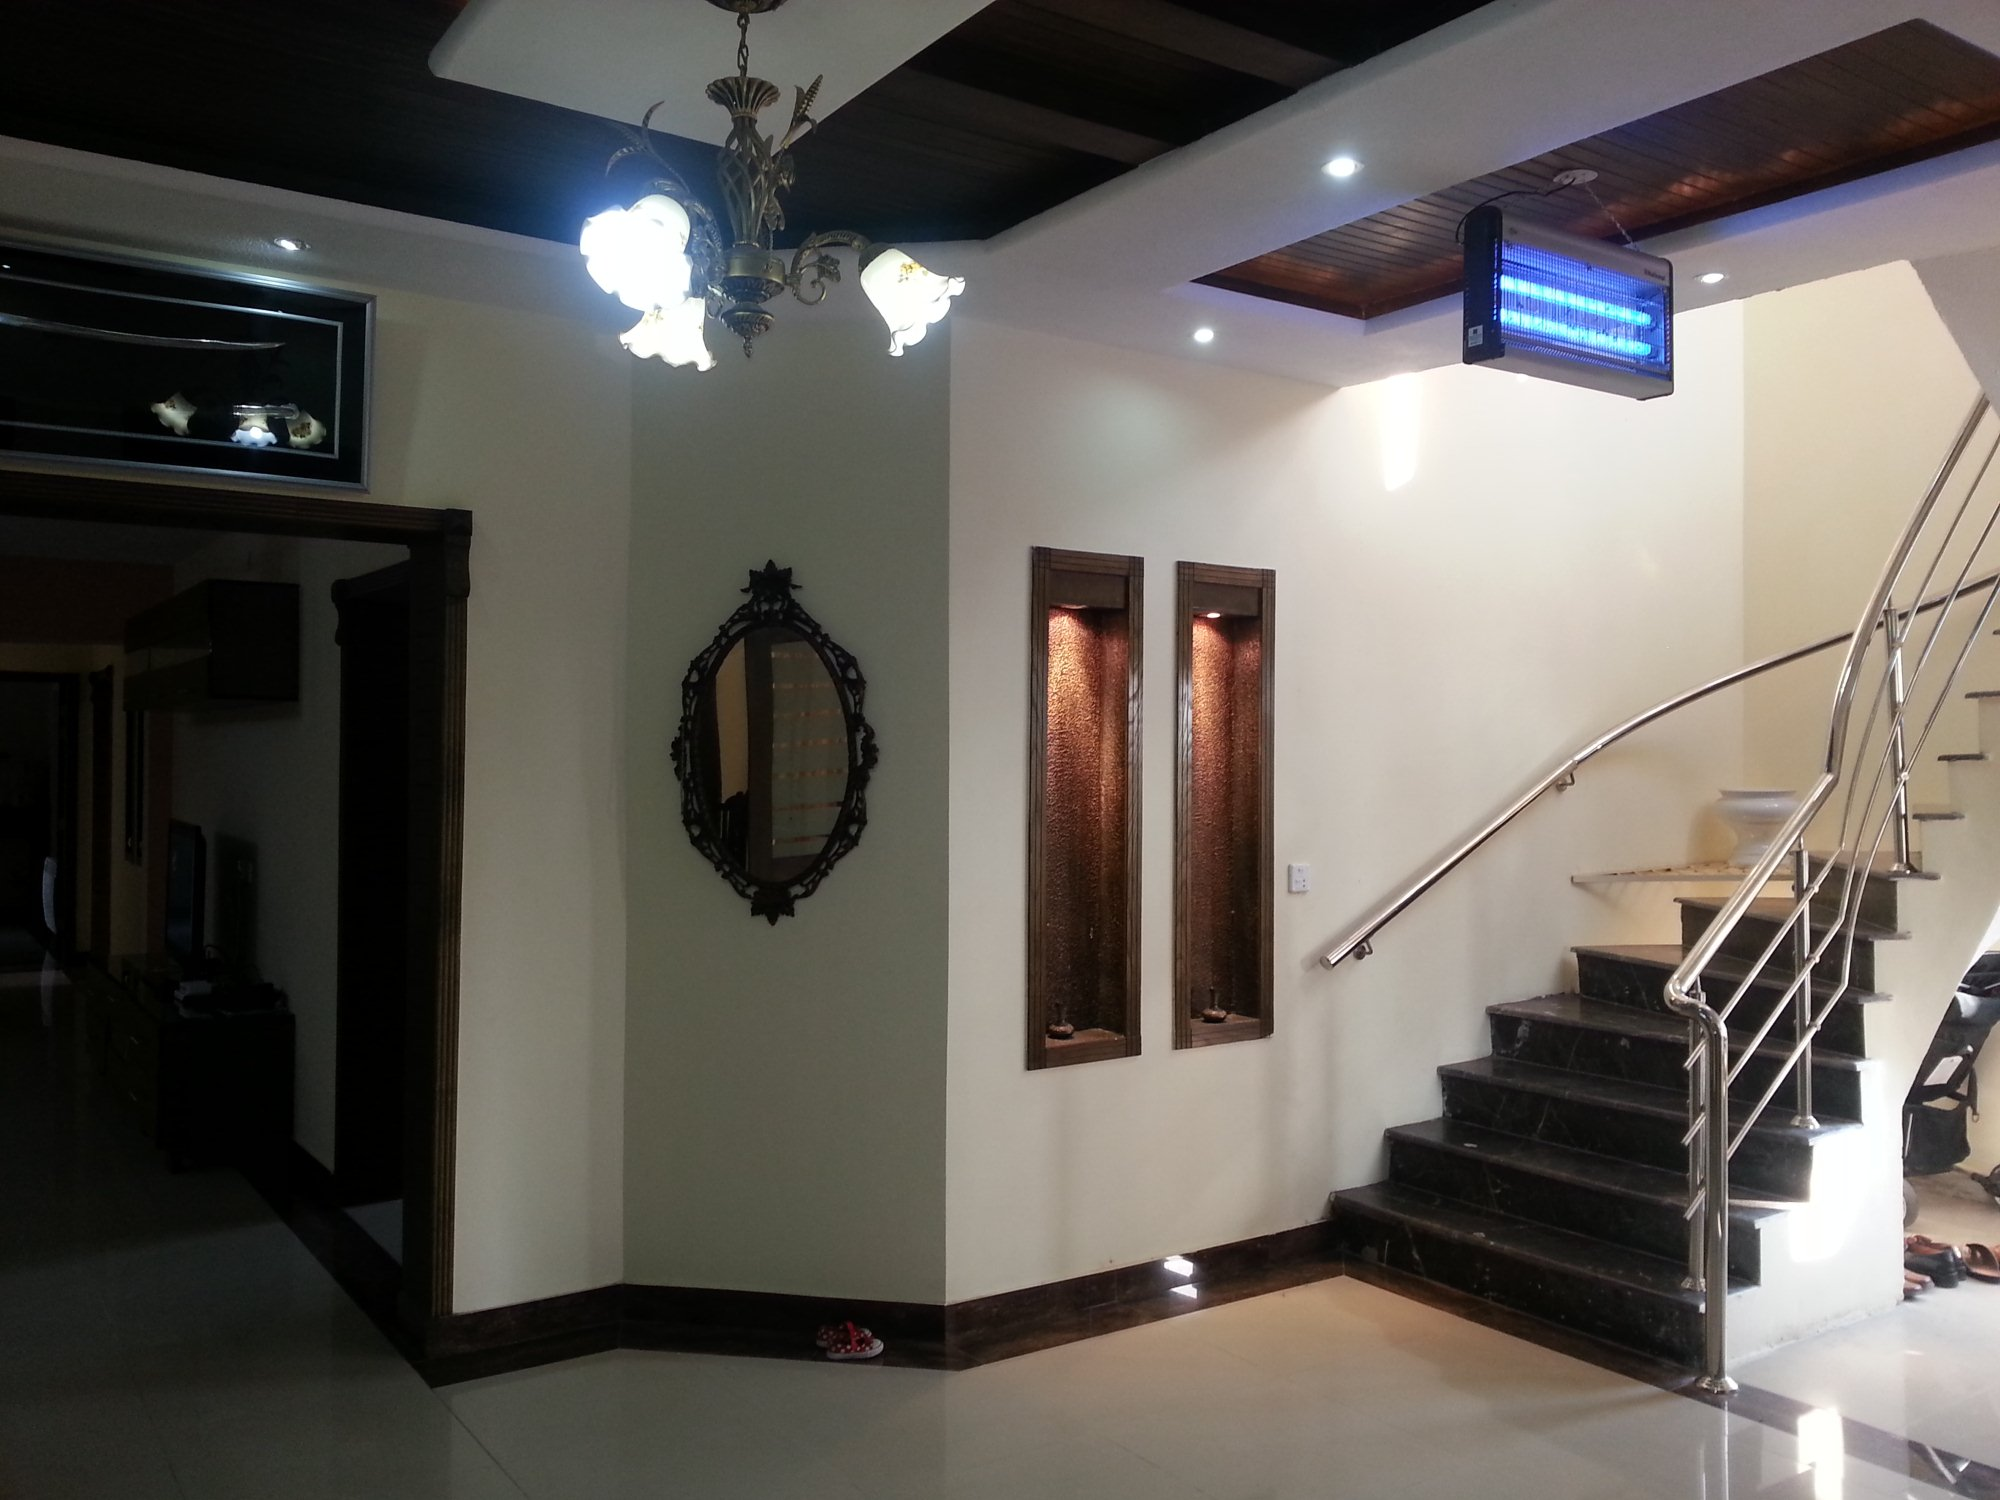 Bahria town islamabad houses design inside and outside for Bahria town islamabad home designs